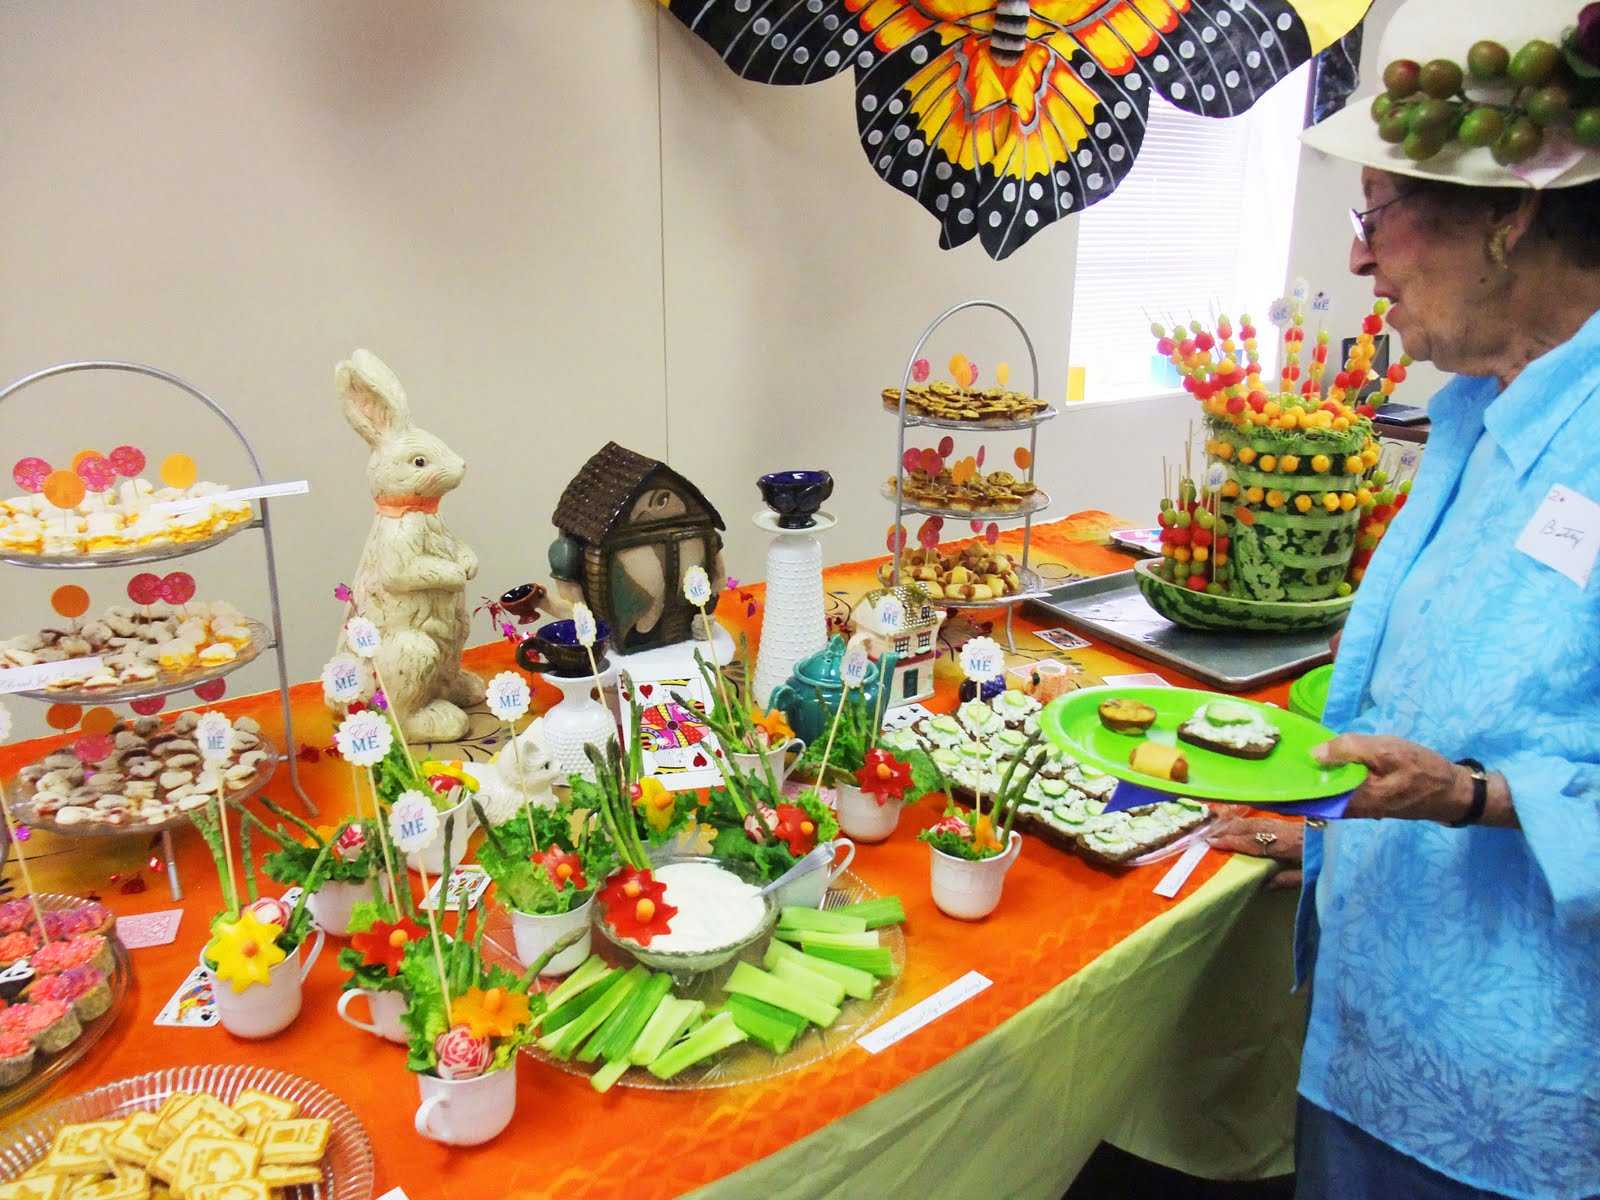 Liddy B. and me: Food and Decorations at Lydia's Tea Party